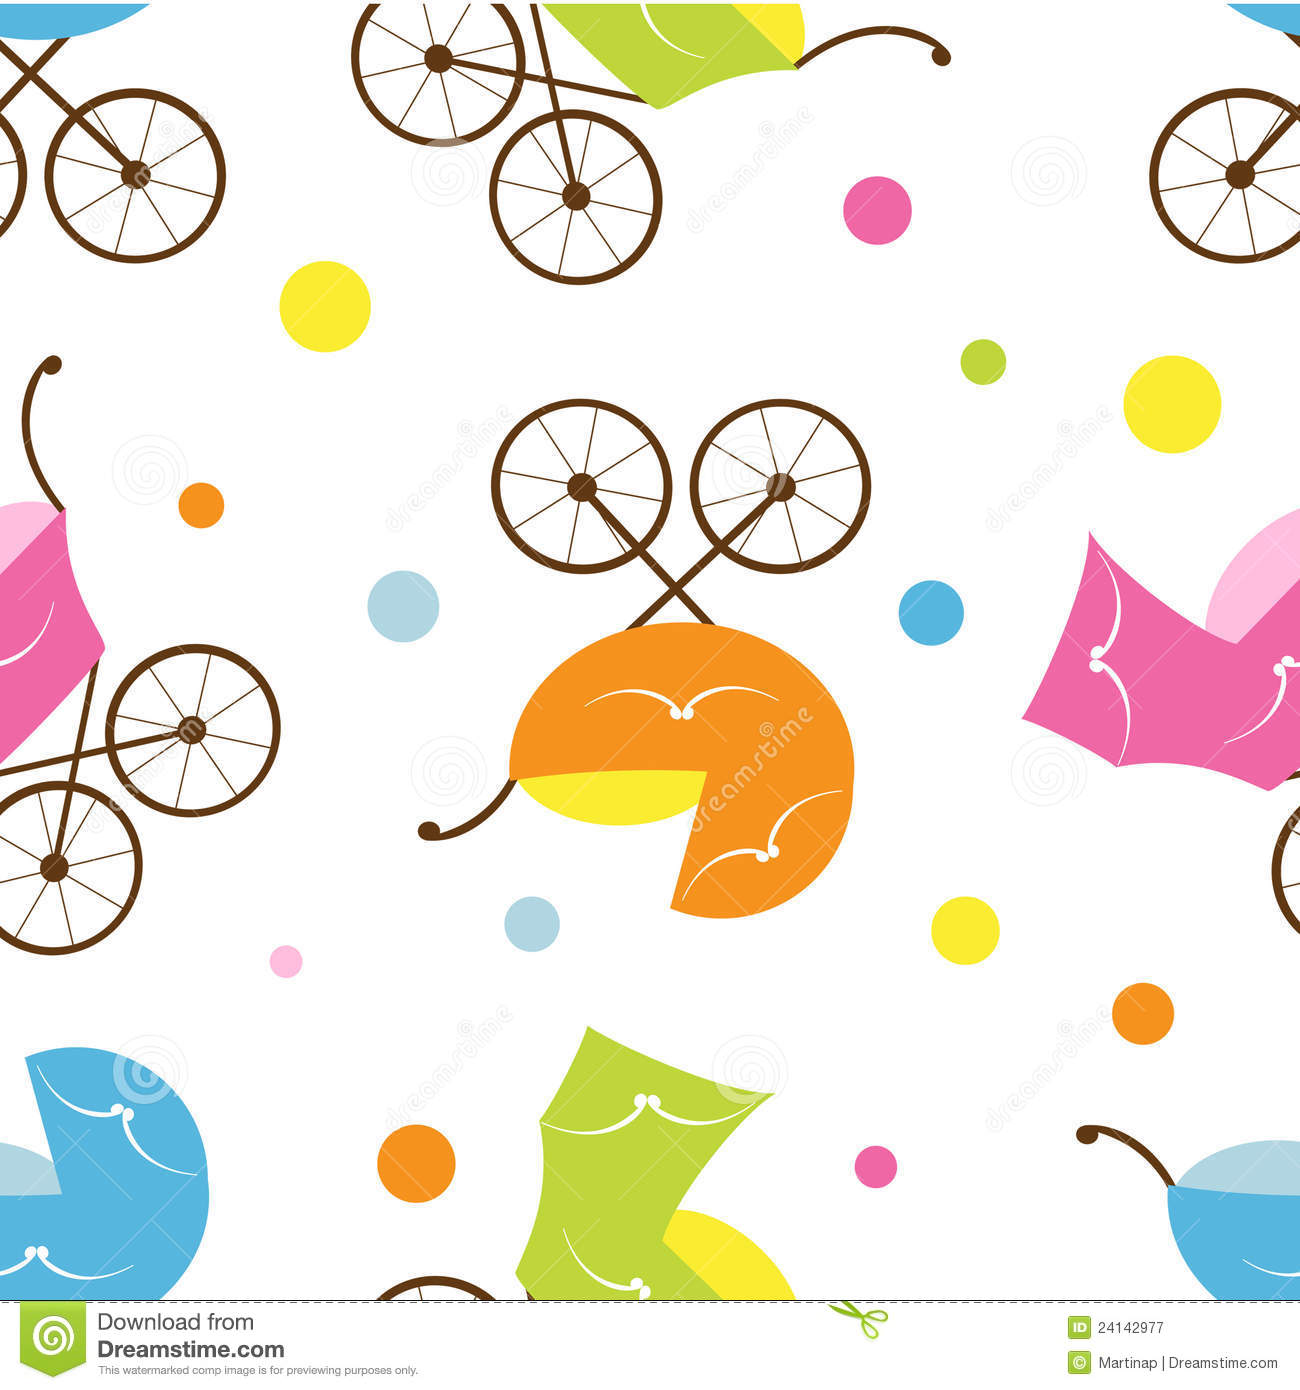 Cute baby clipart patterns picture library Cute Baby Seamless Pattern Royalty Free Stock Photography - Image ... picture library